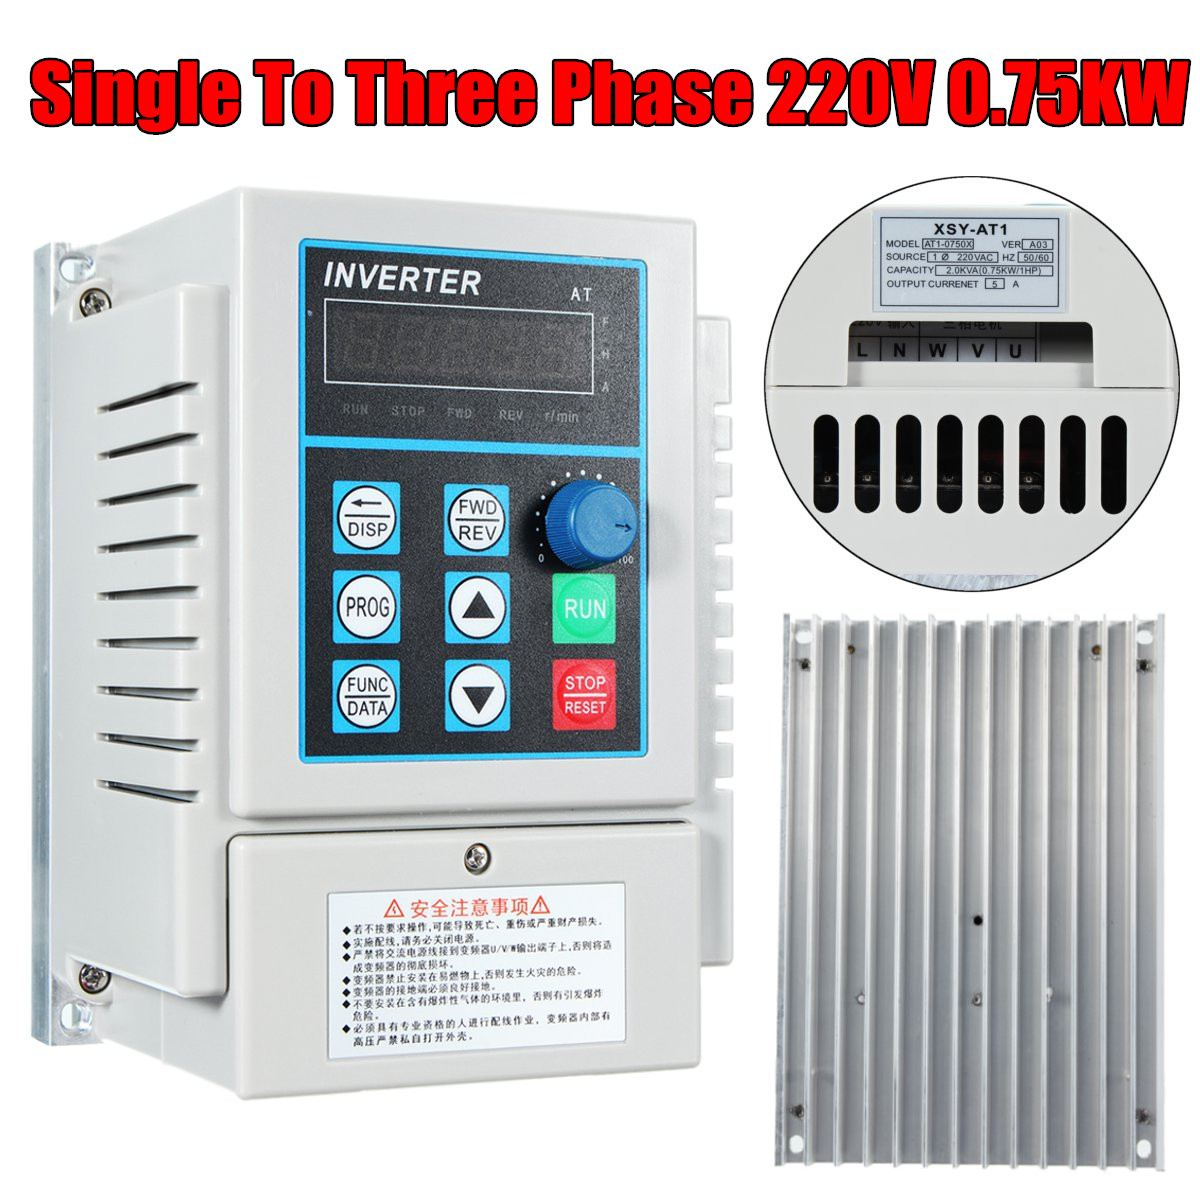 Brand New 220V 0.75KW PWM Control Variable Frequency Drive VFD 3PH Input 3PH frequency Drive inverter new atv312hu75n4 vfd inverter input 3ph 380v 17a 7 5kw